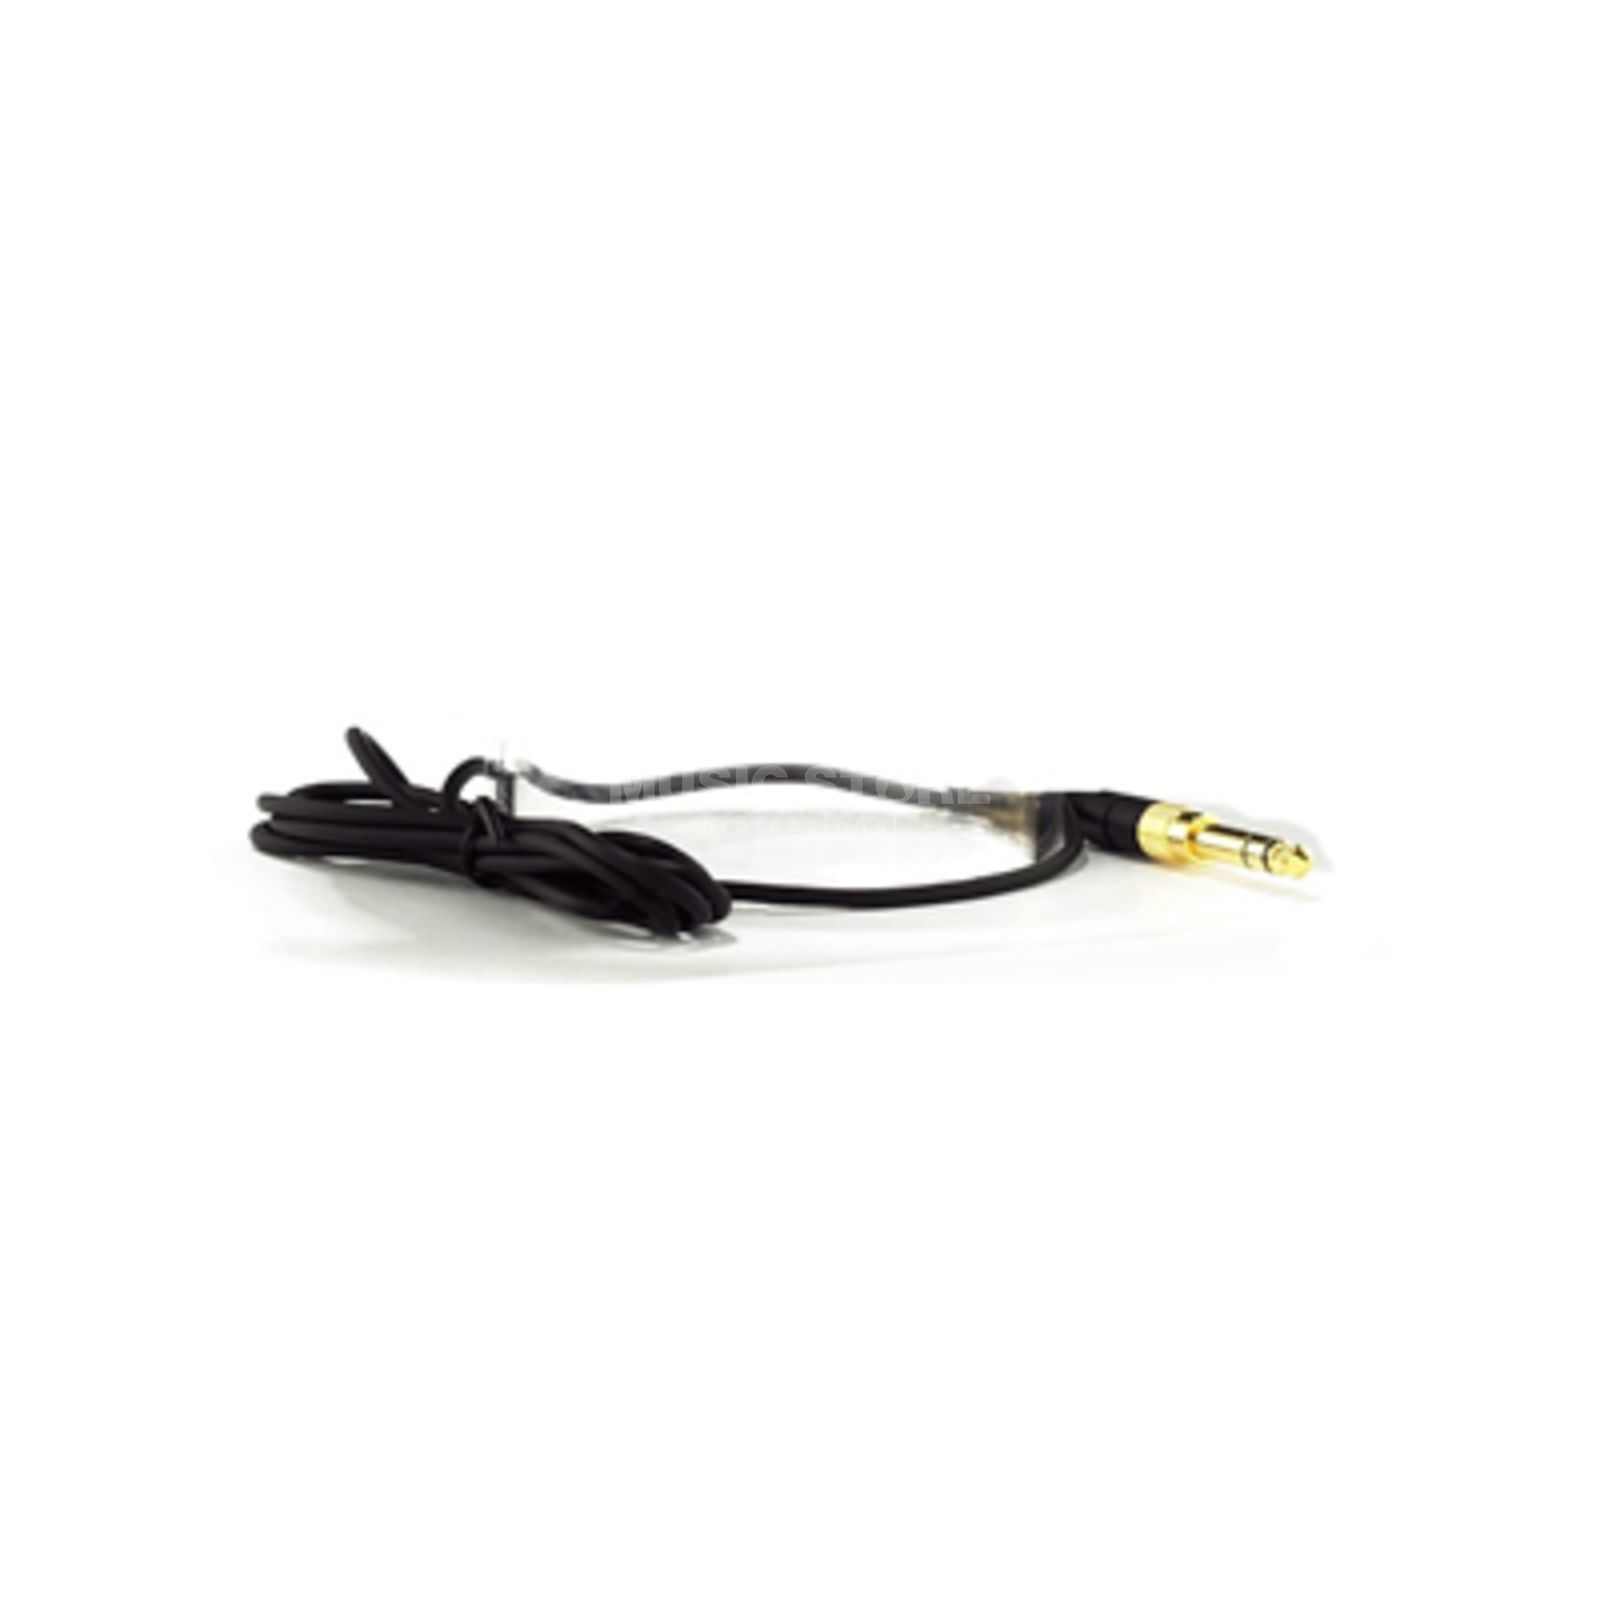 AKG Replacement Cable for AKG K-181 DJ EAK0110E0289 1.8m Produktbillede